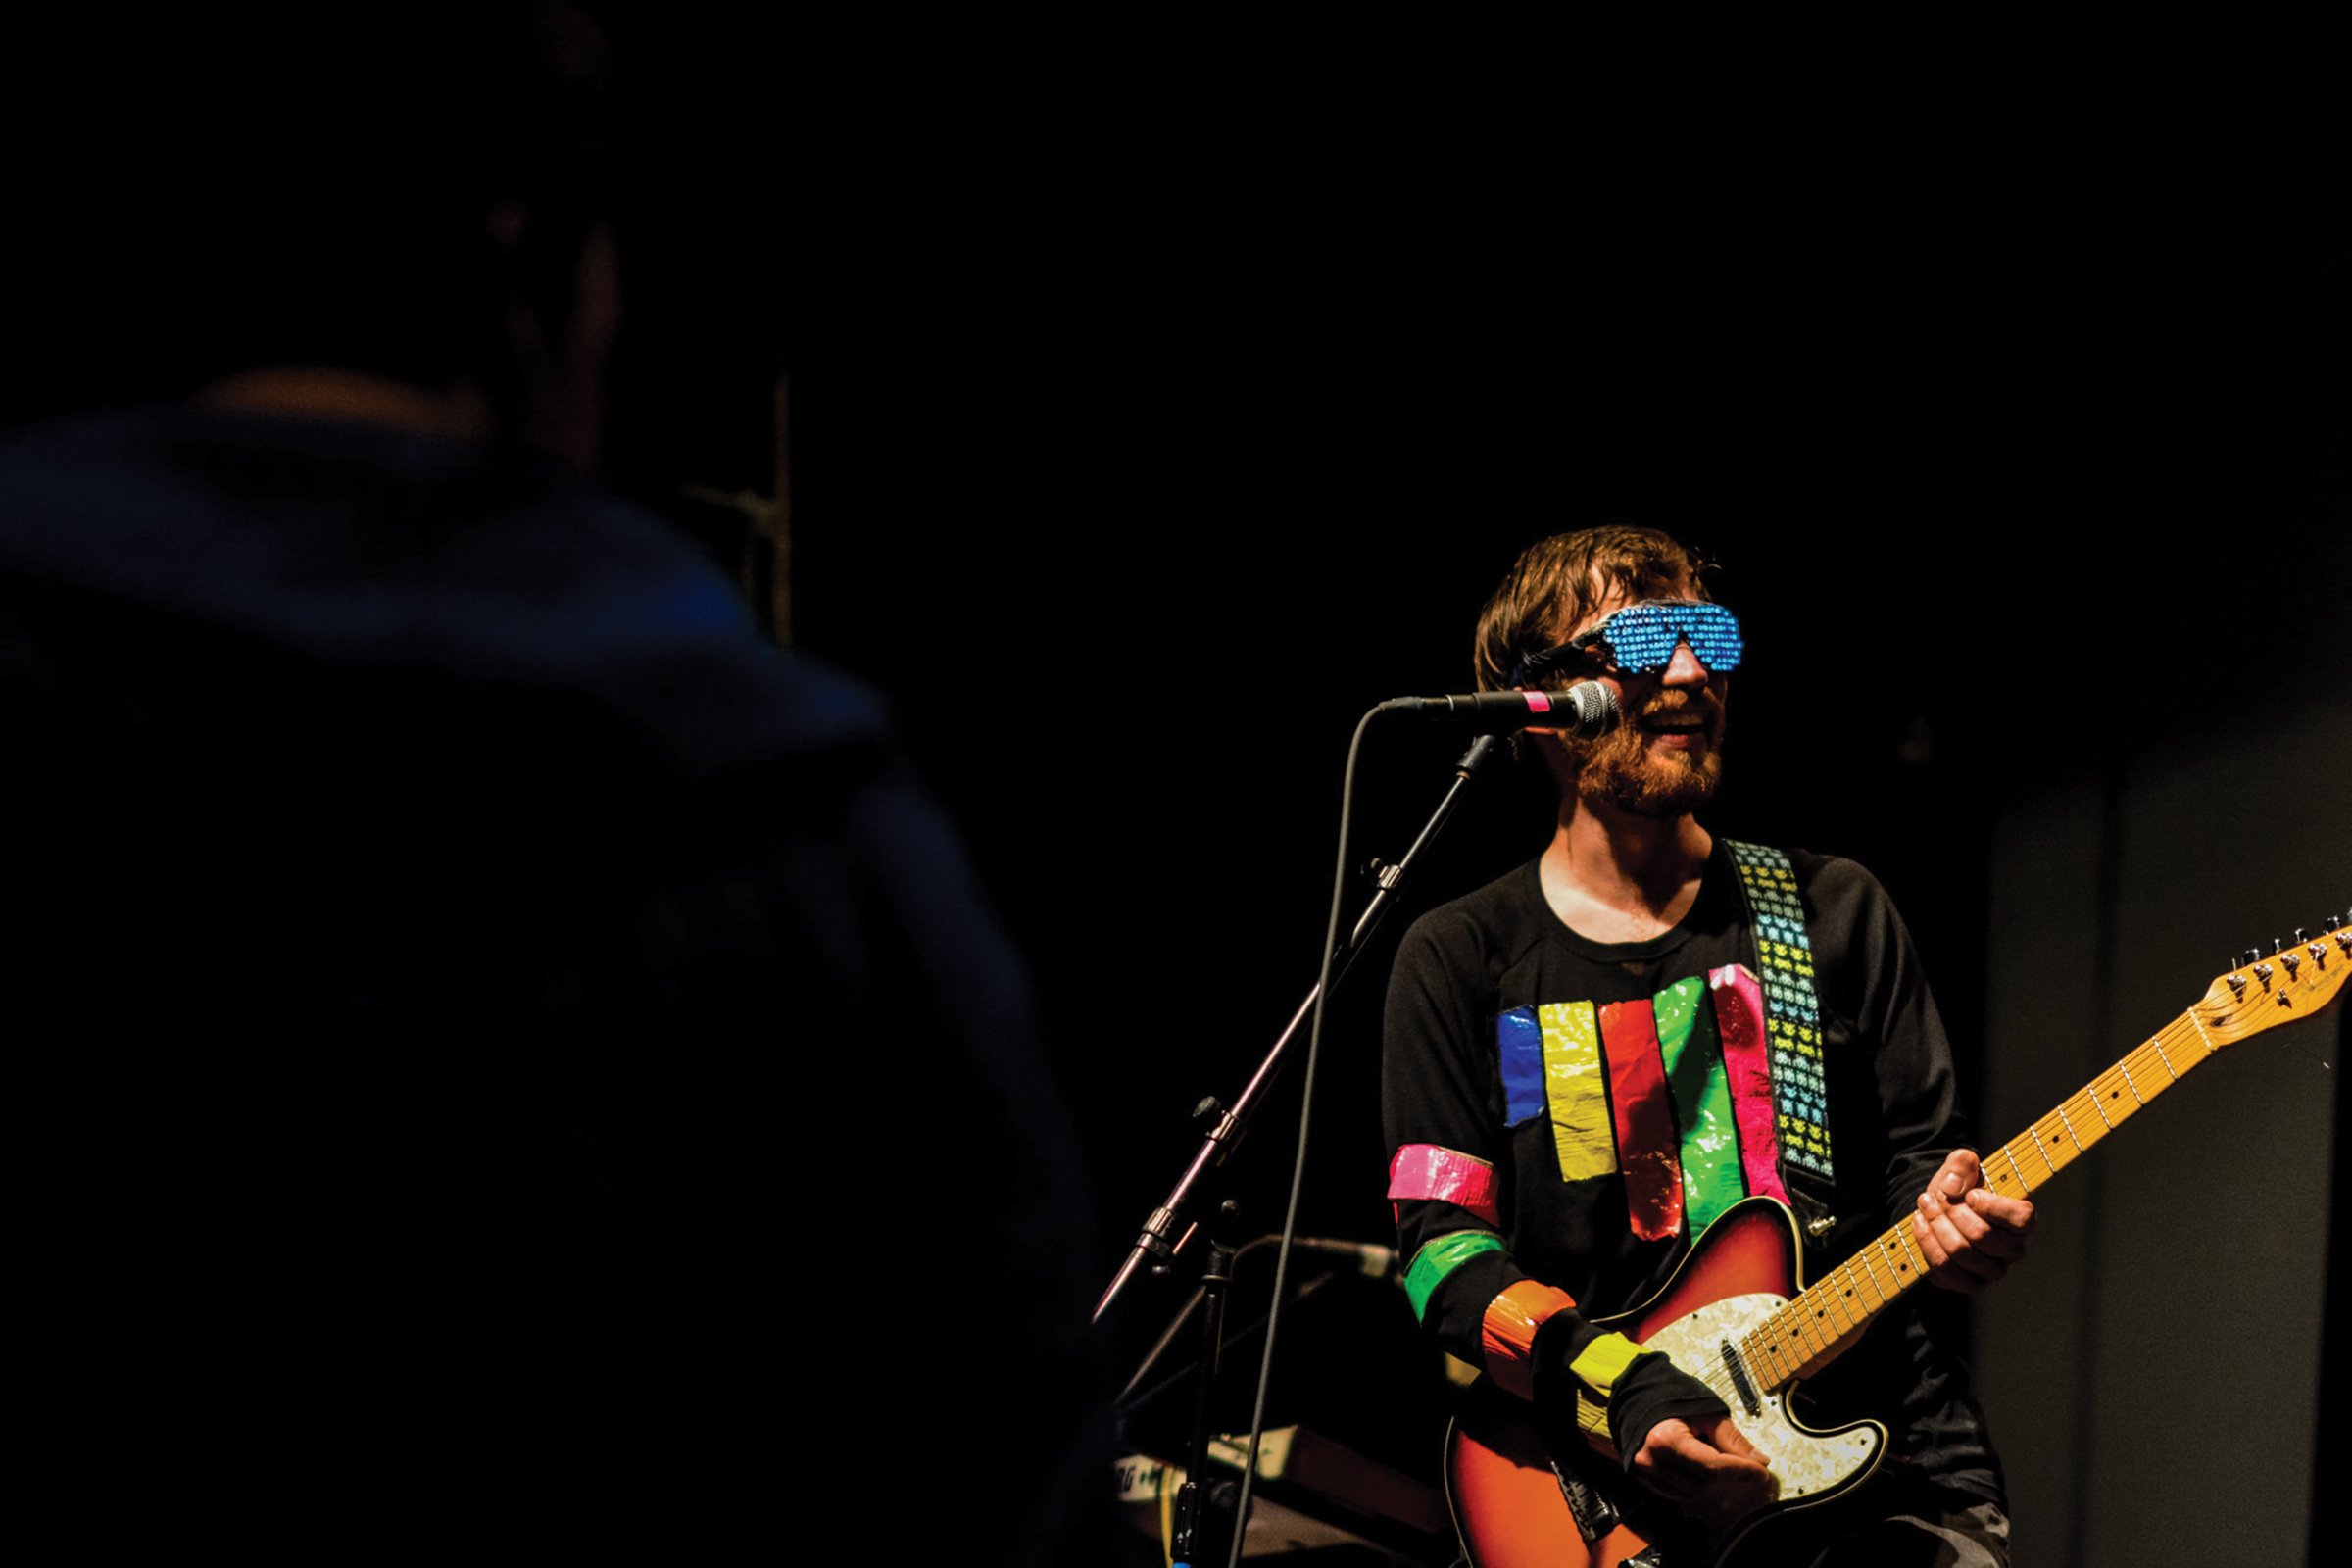 A man wearing silly sunglasses and playing the guitar